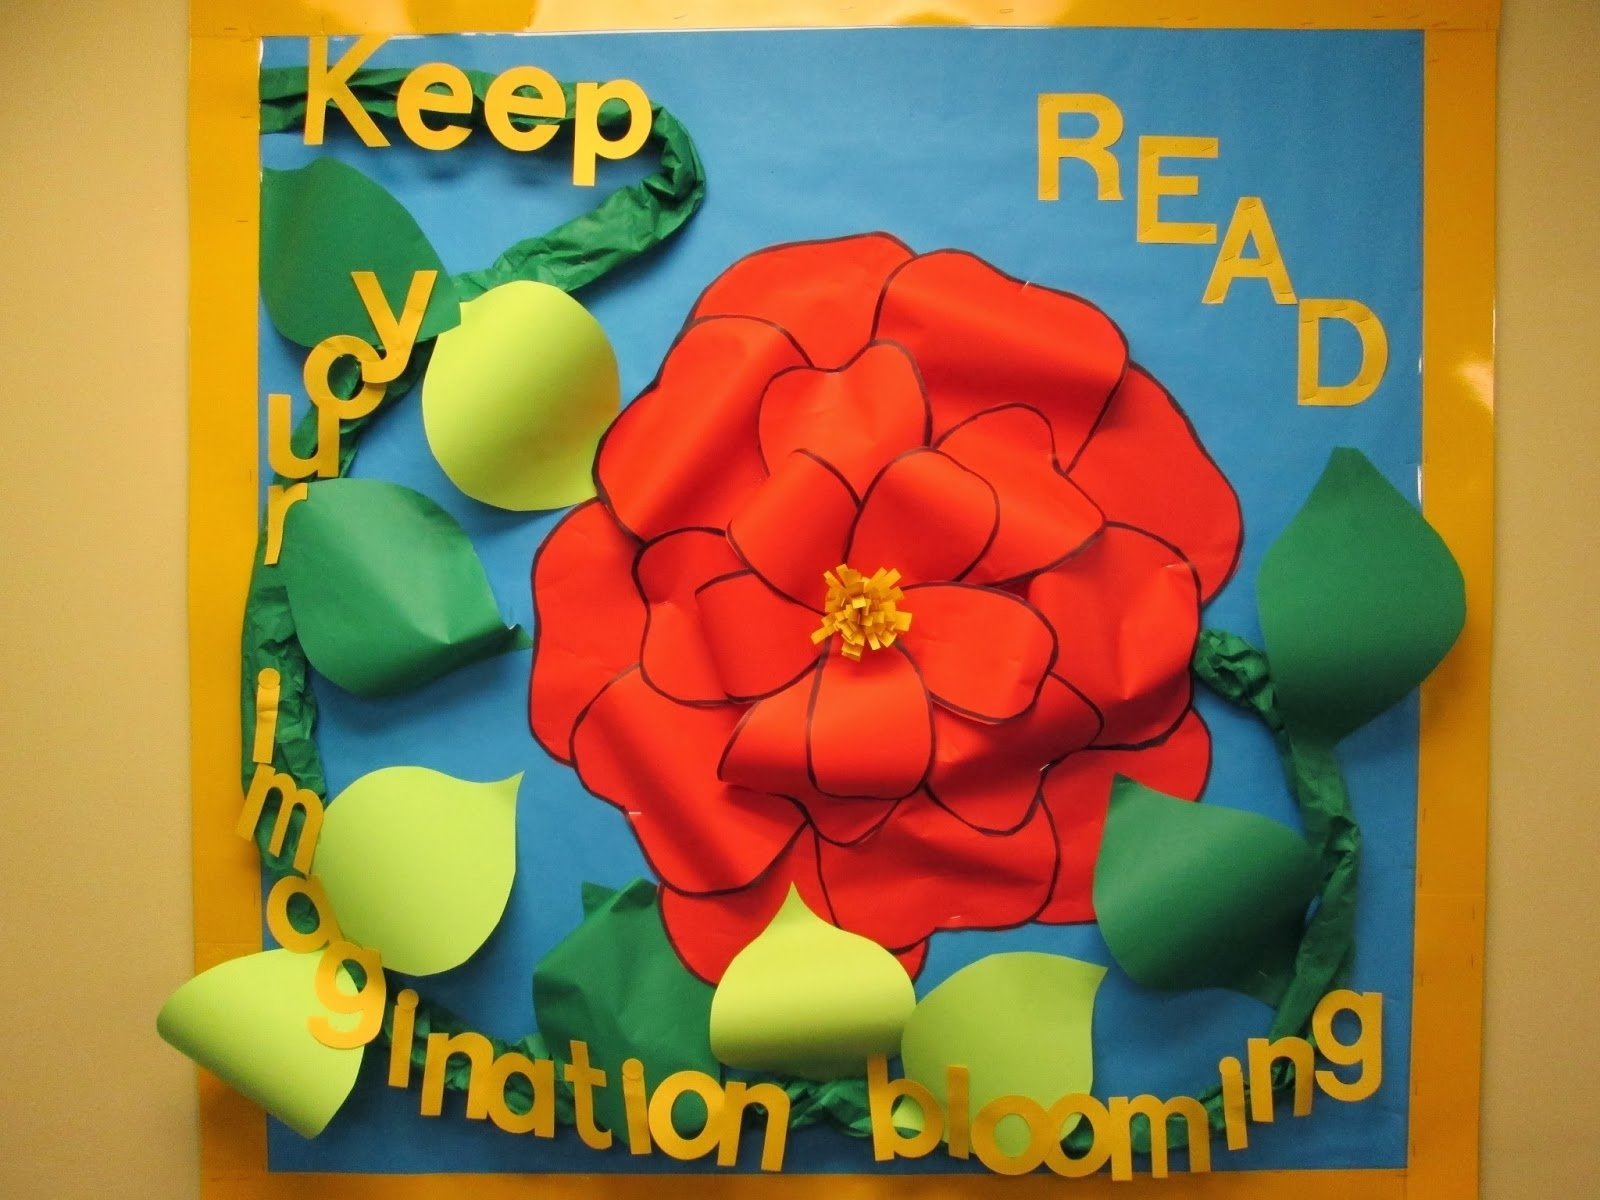 10 Most Recommended Bulletin Board Ideas For March lorris school library blog spring march april library bulletin 1